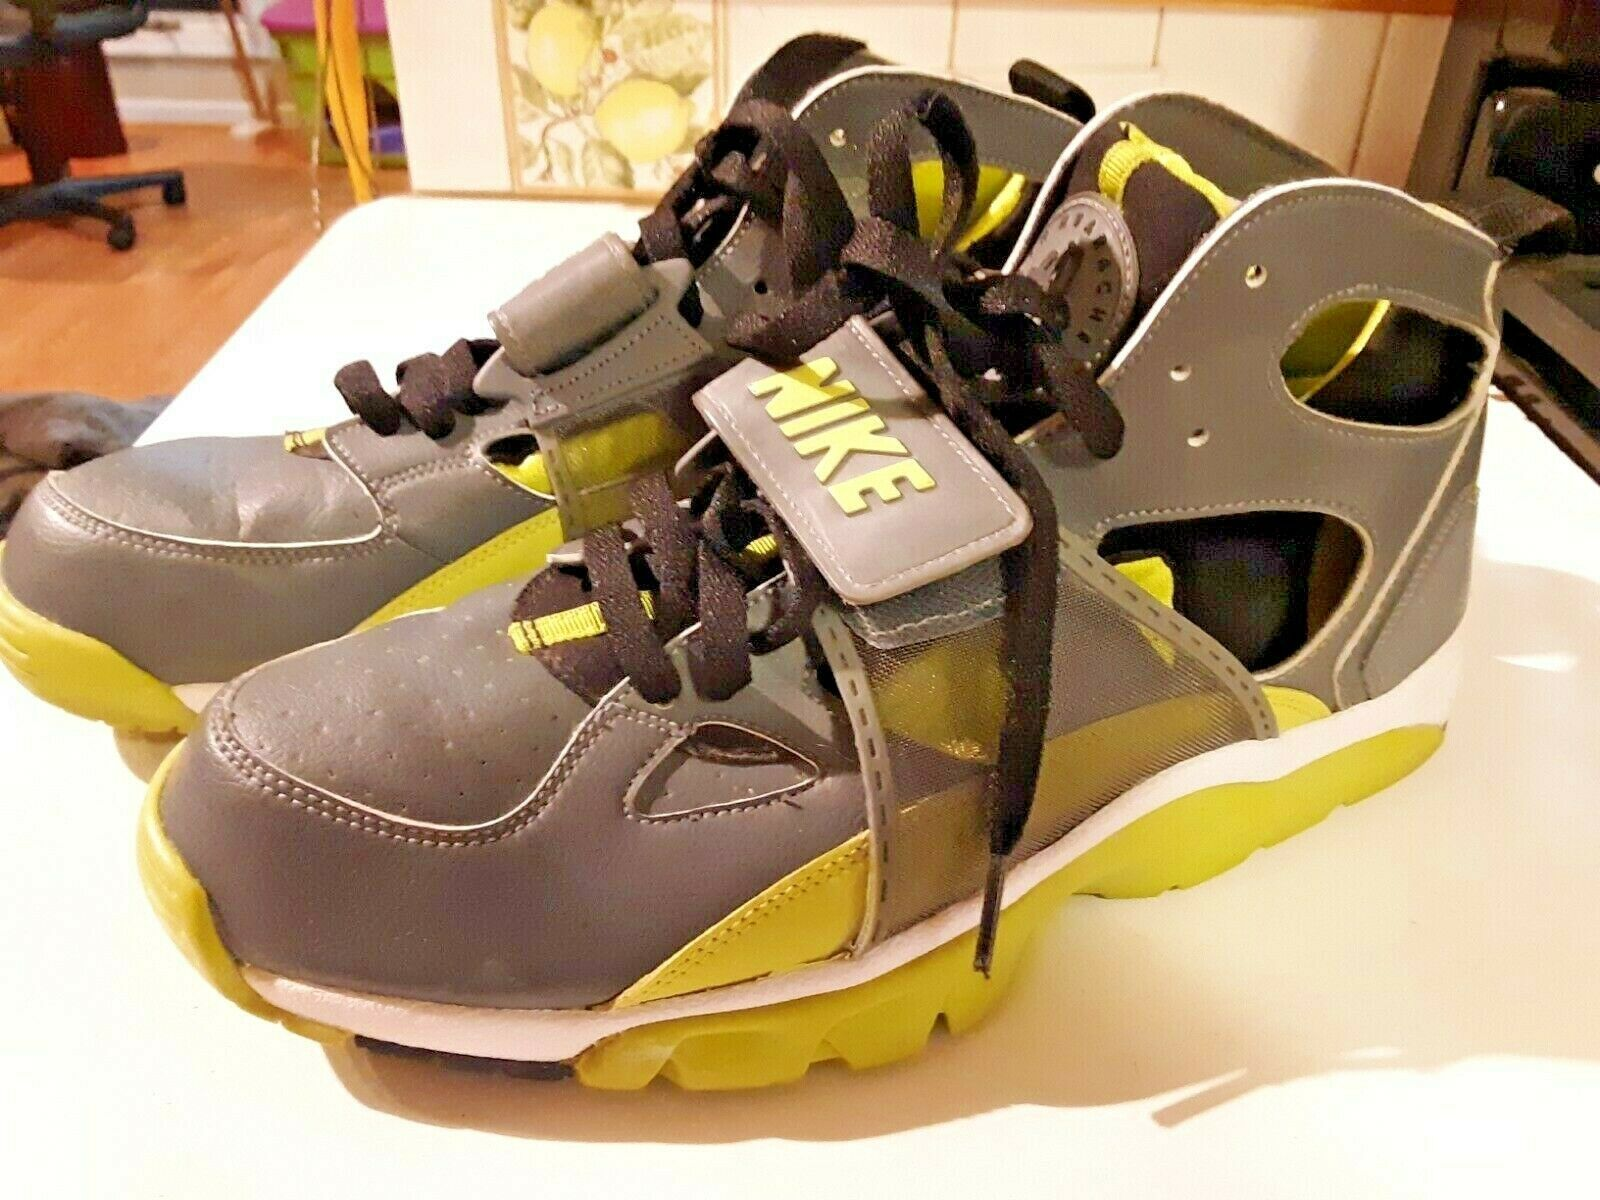 Primary image for 2007 Nike Air Trainer Huarache (Cactus pack) size 10.5